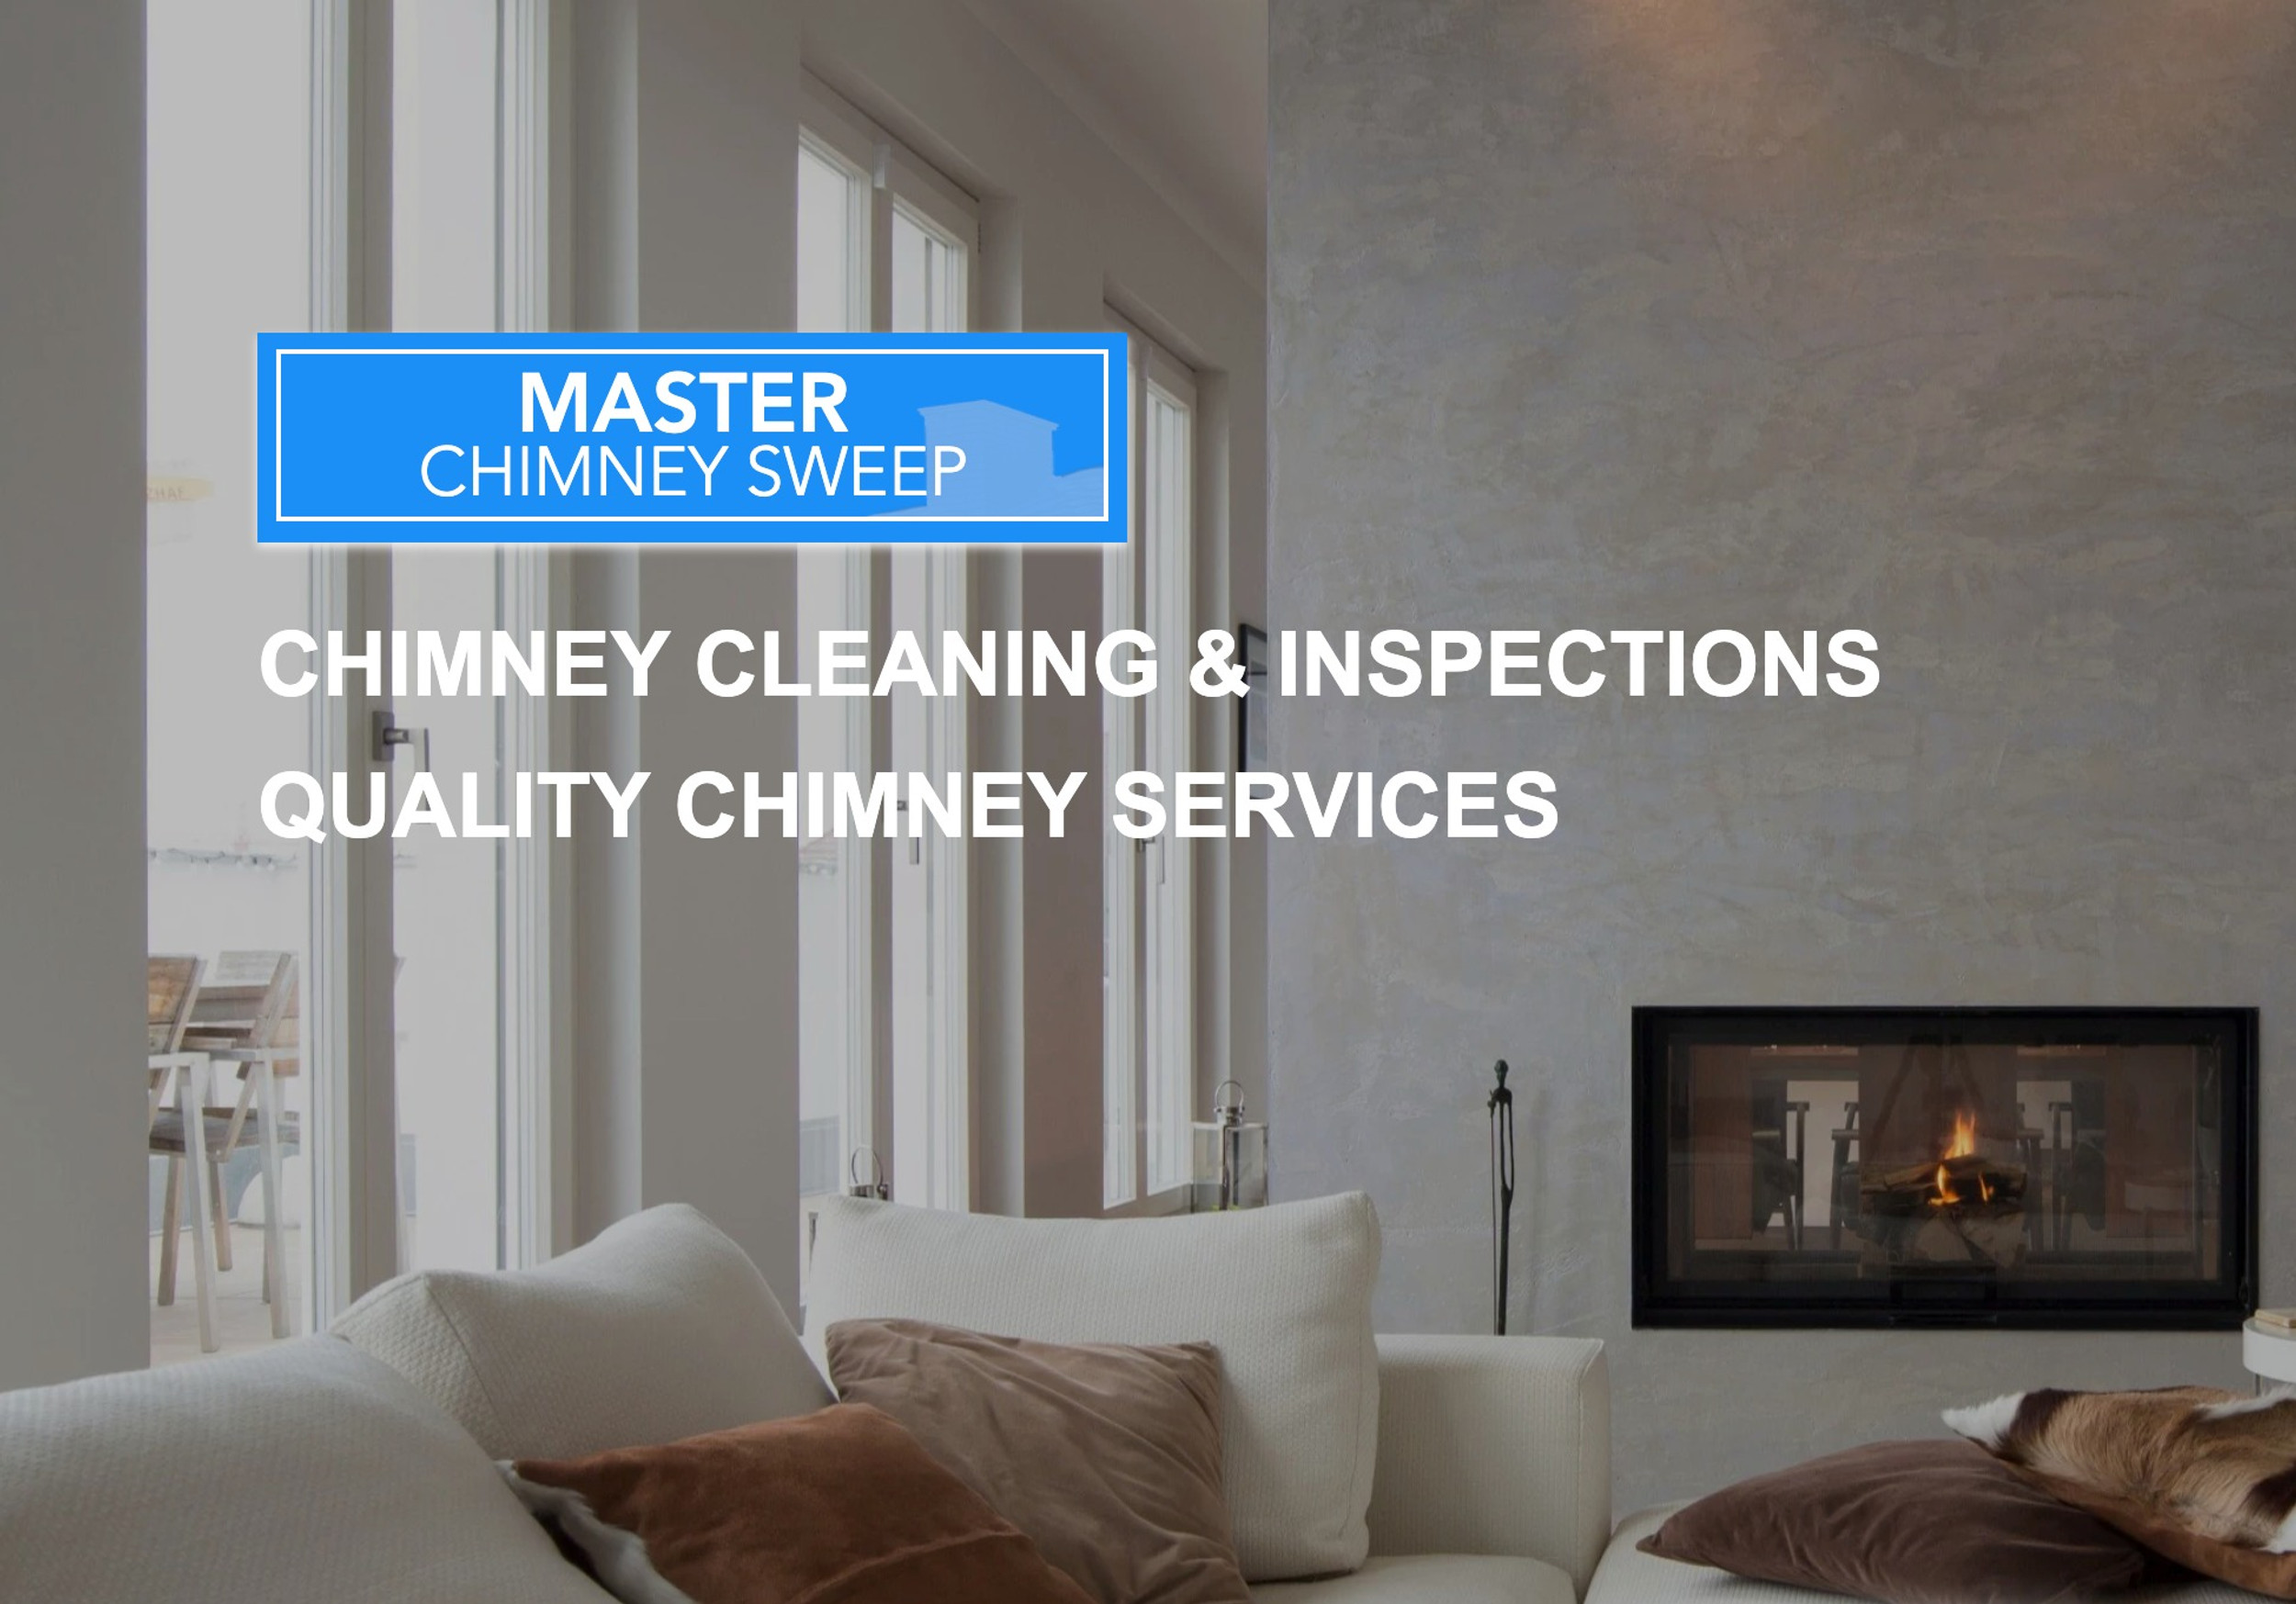 HOME | MASTER Chimney Sweep | Chimney Services